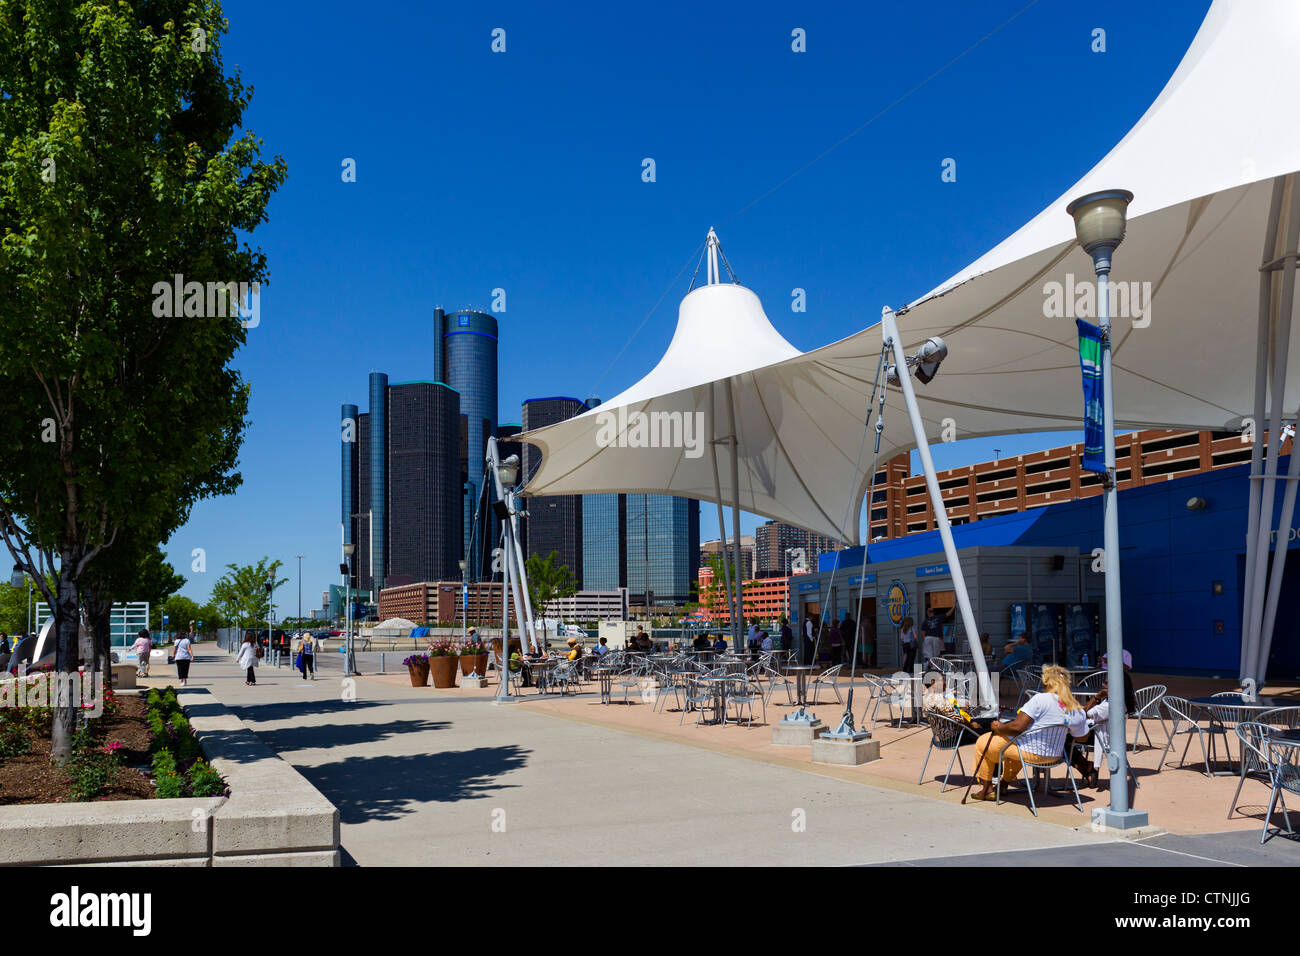 The Riverwalk Cafe in Rivard Plaza with the Renaissance Center city skyline behind, Detroit, Michigan, USA - Stock Image